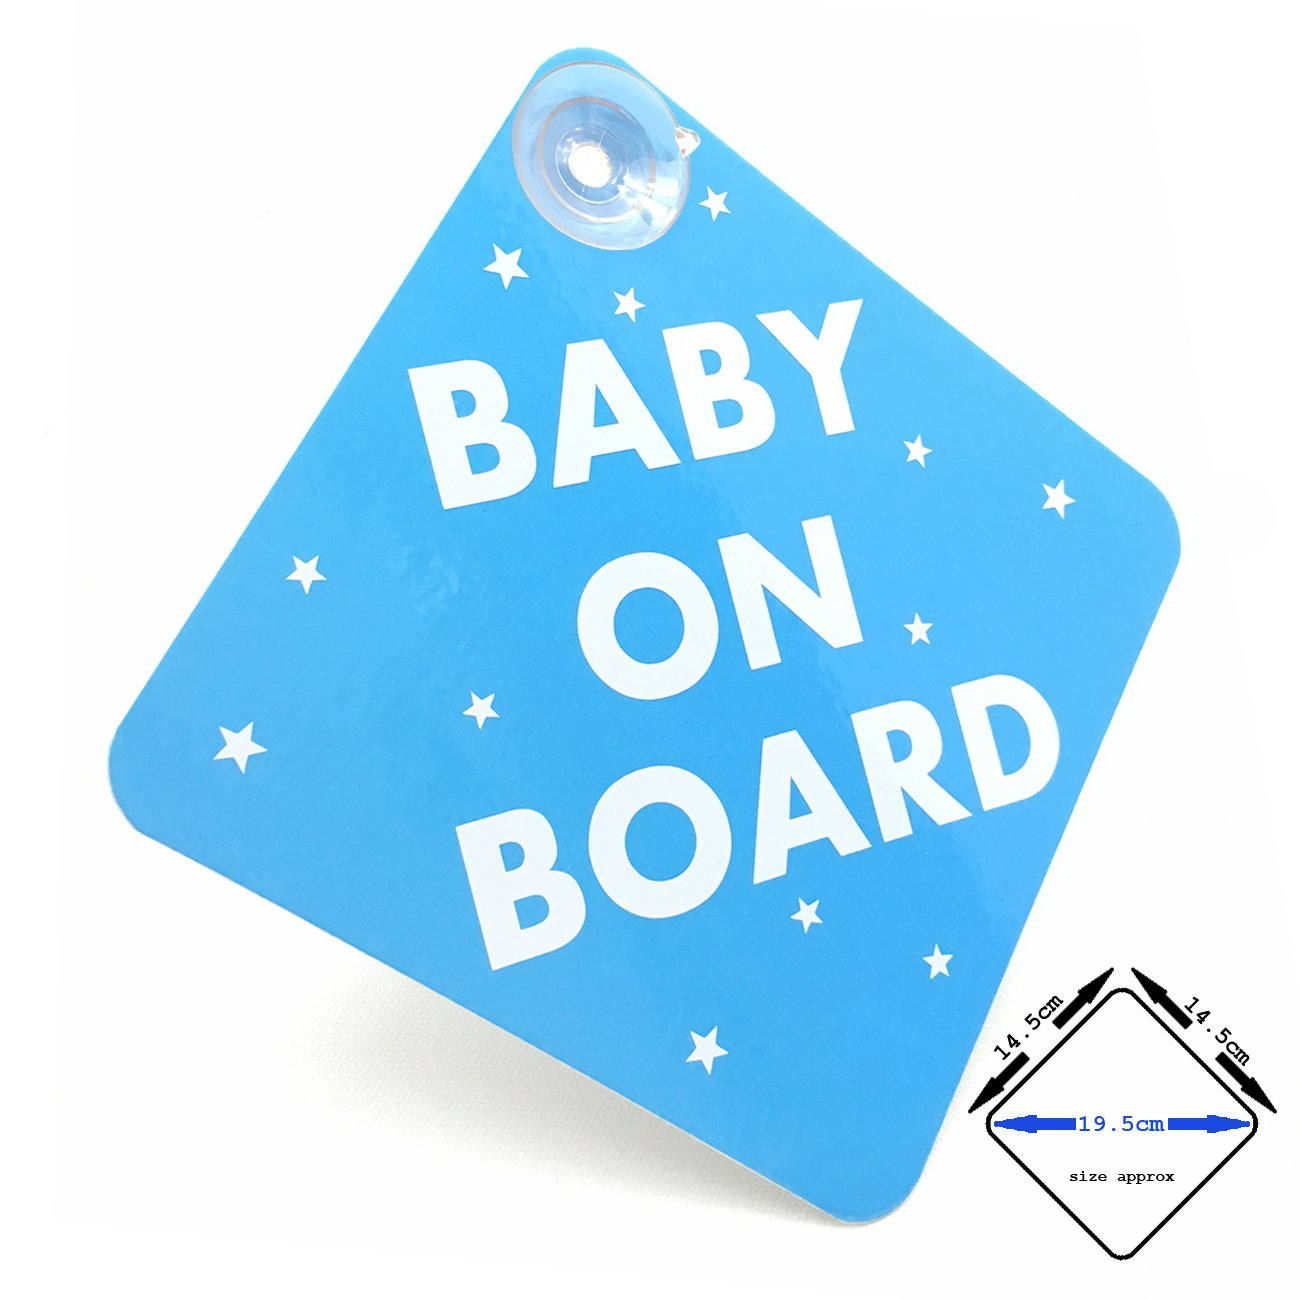 acepoprt BABY ON BOARD car sign with suction cups (gloss Blue/White)